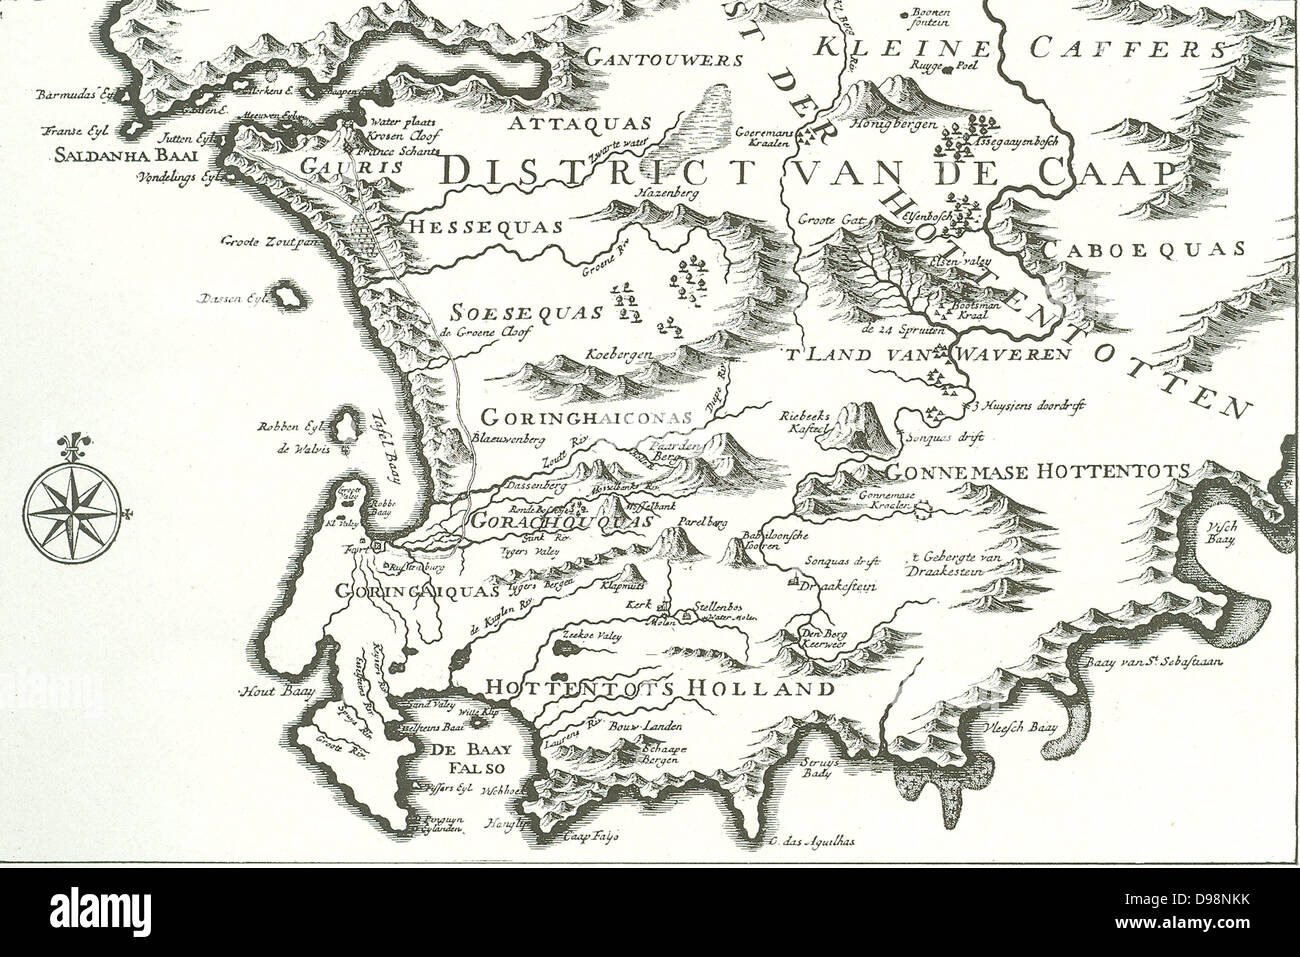 District of the Cape The Good Hope  map of a portion of the